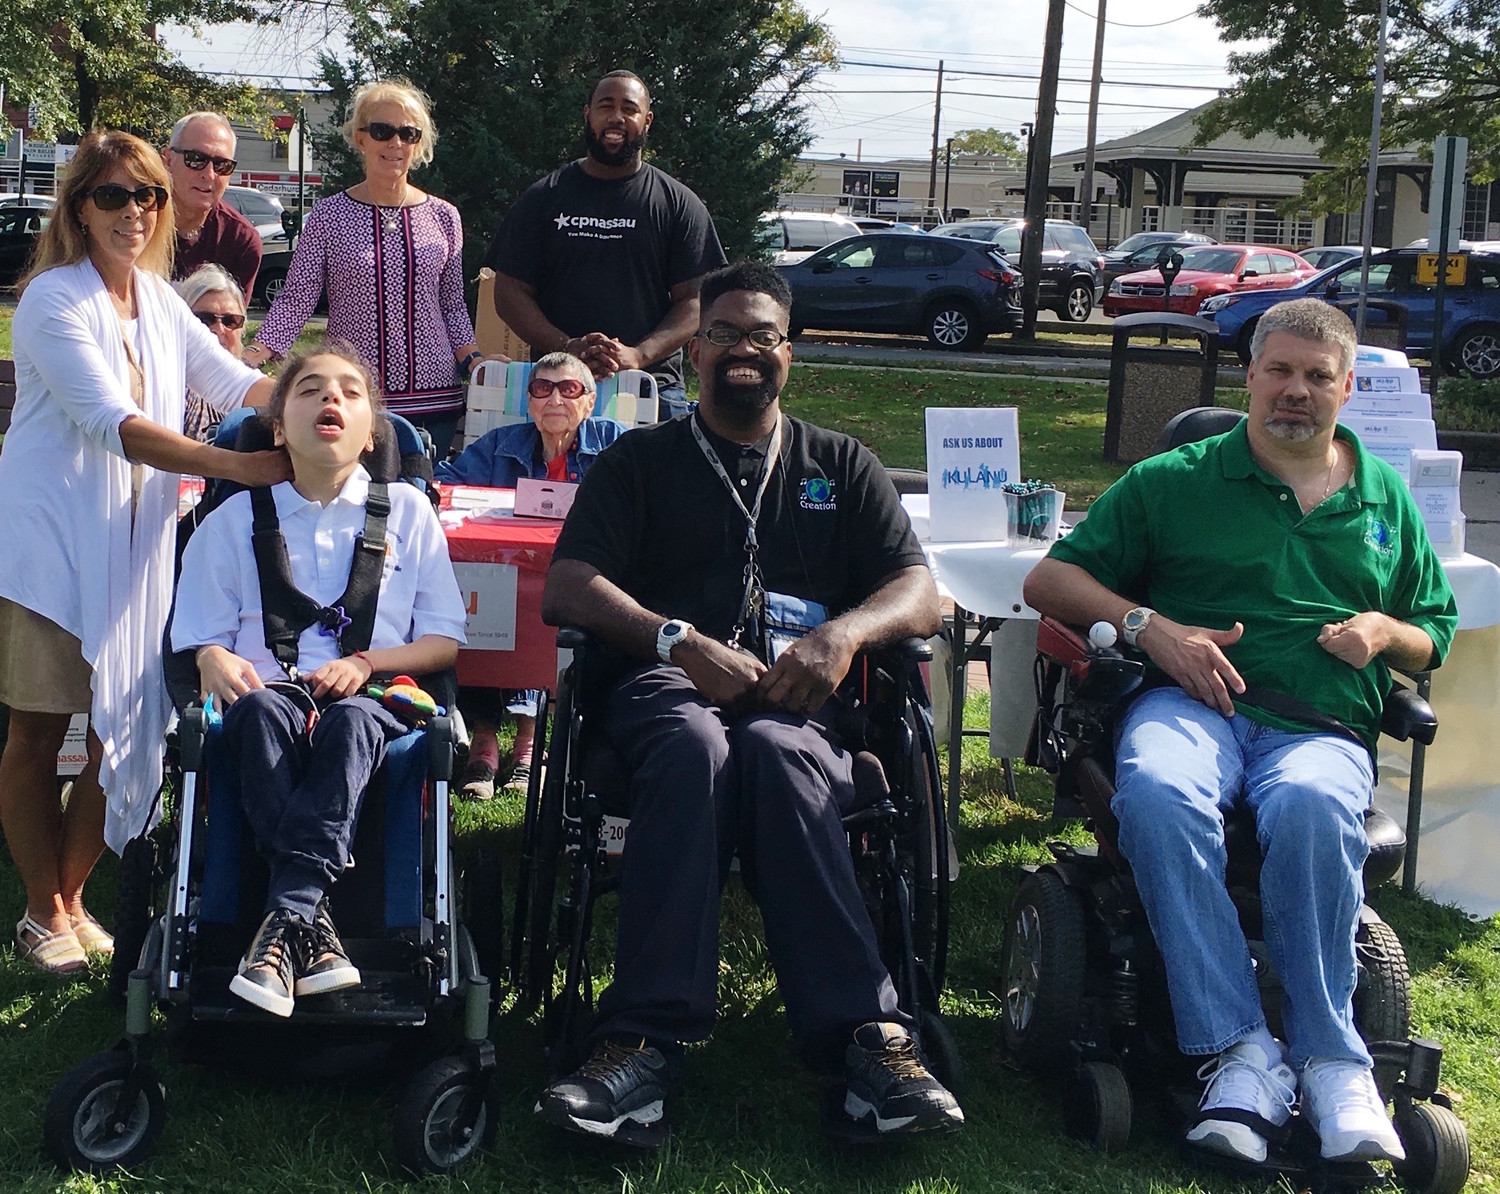 Andrew J. Parise Cedarhurst Park will again play host to the Disability Fair. At last year's event were, from left, Assemblywoman Melissa Miller, her son, Oliver, and Cerebral Palsy Association of Nassau County members David Tindal and Chris Wawrznoek.